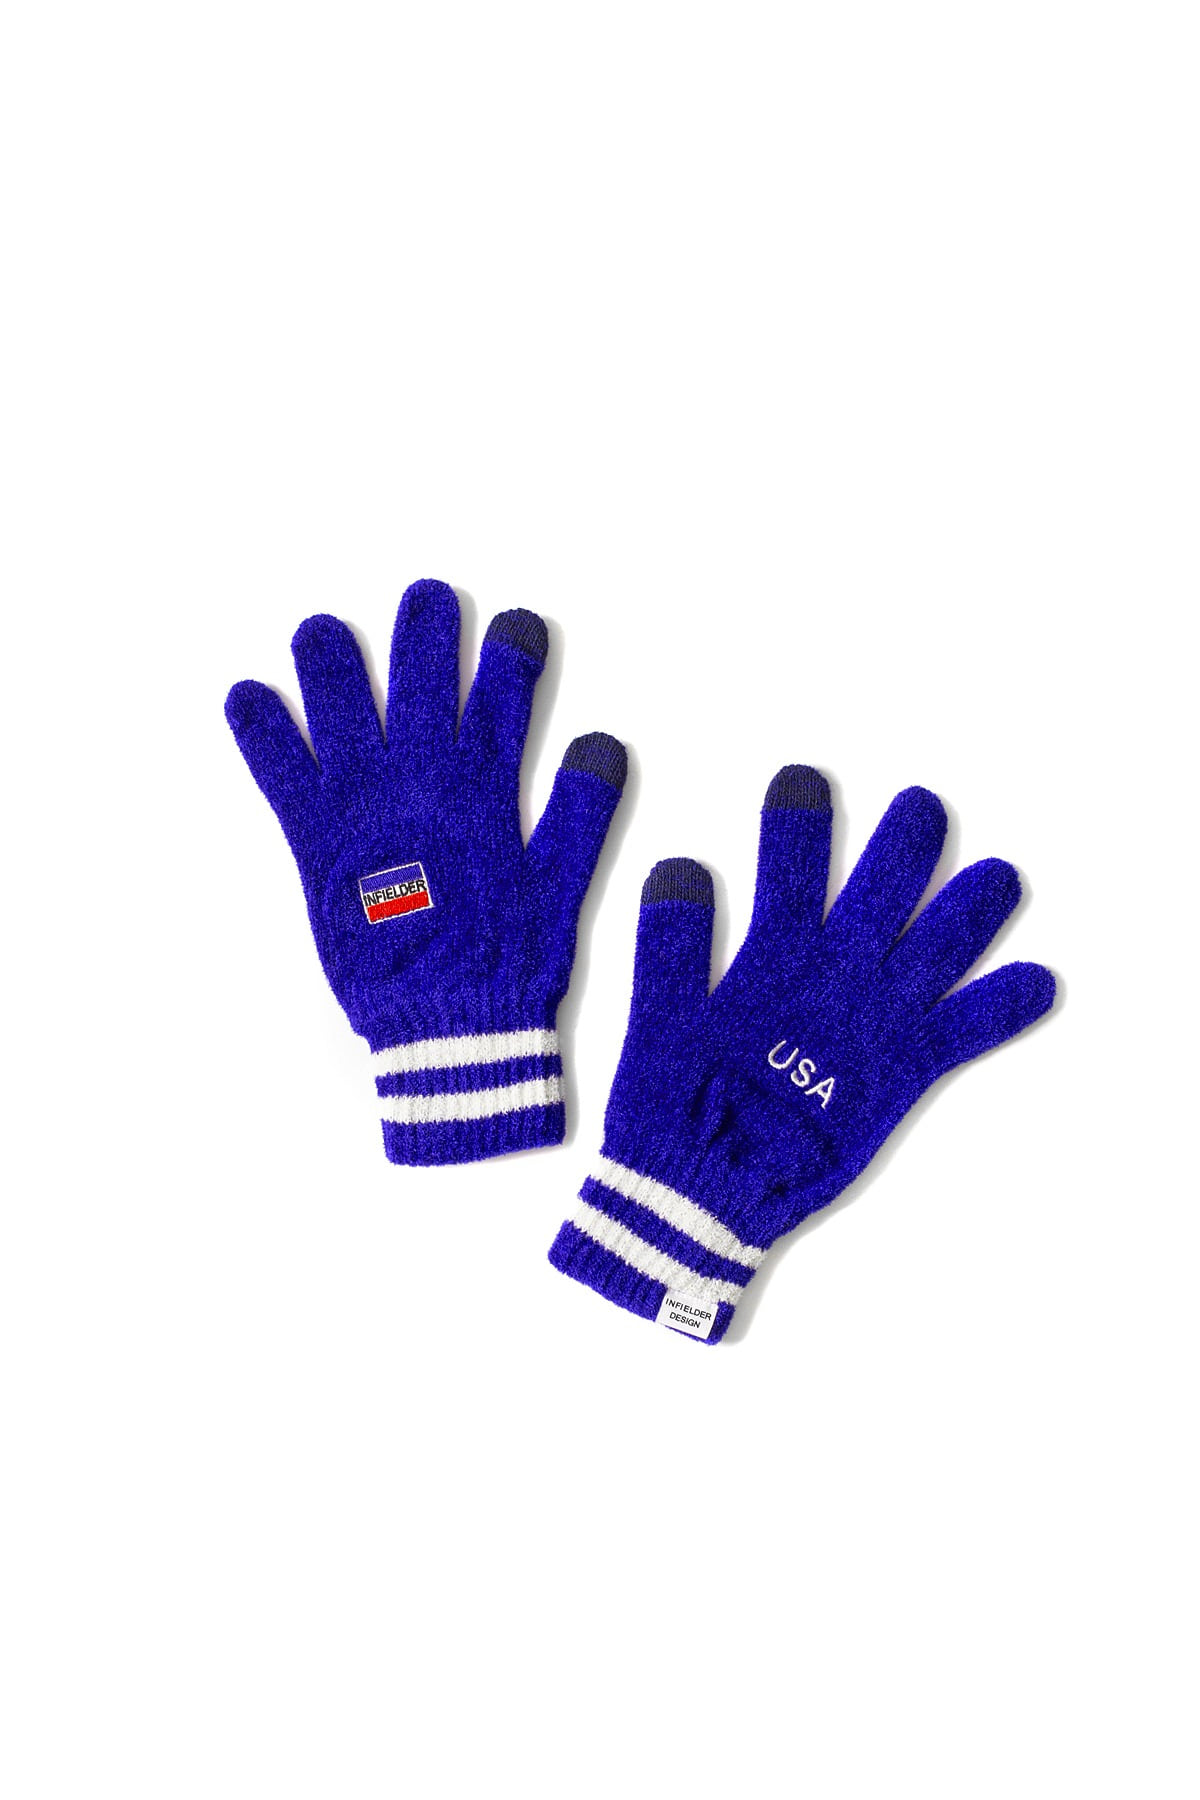 Infielder Design : USA Gloves (Blue)